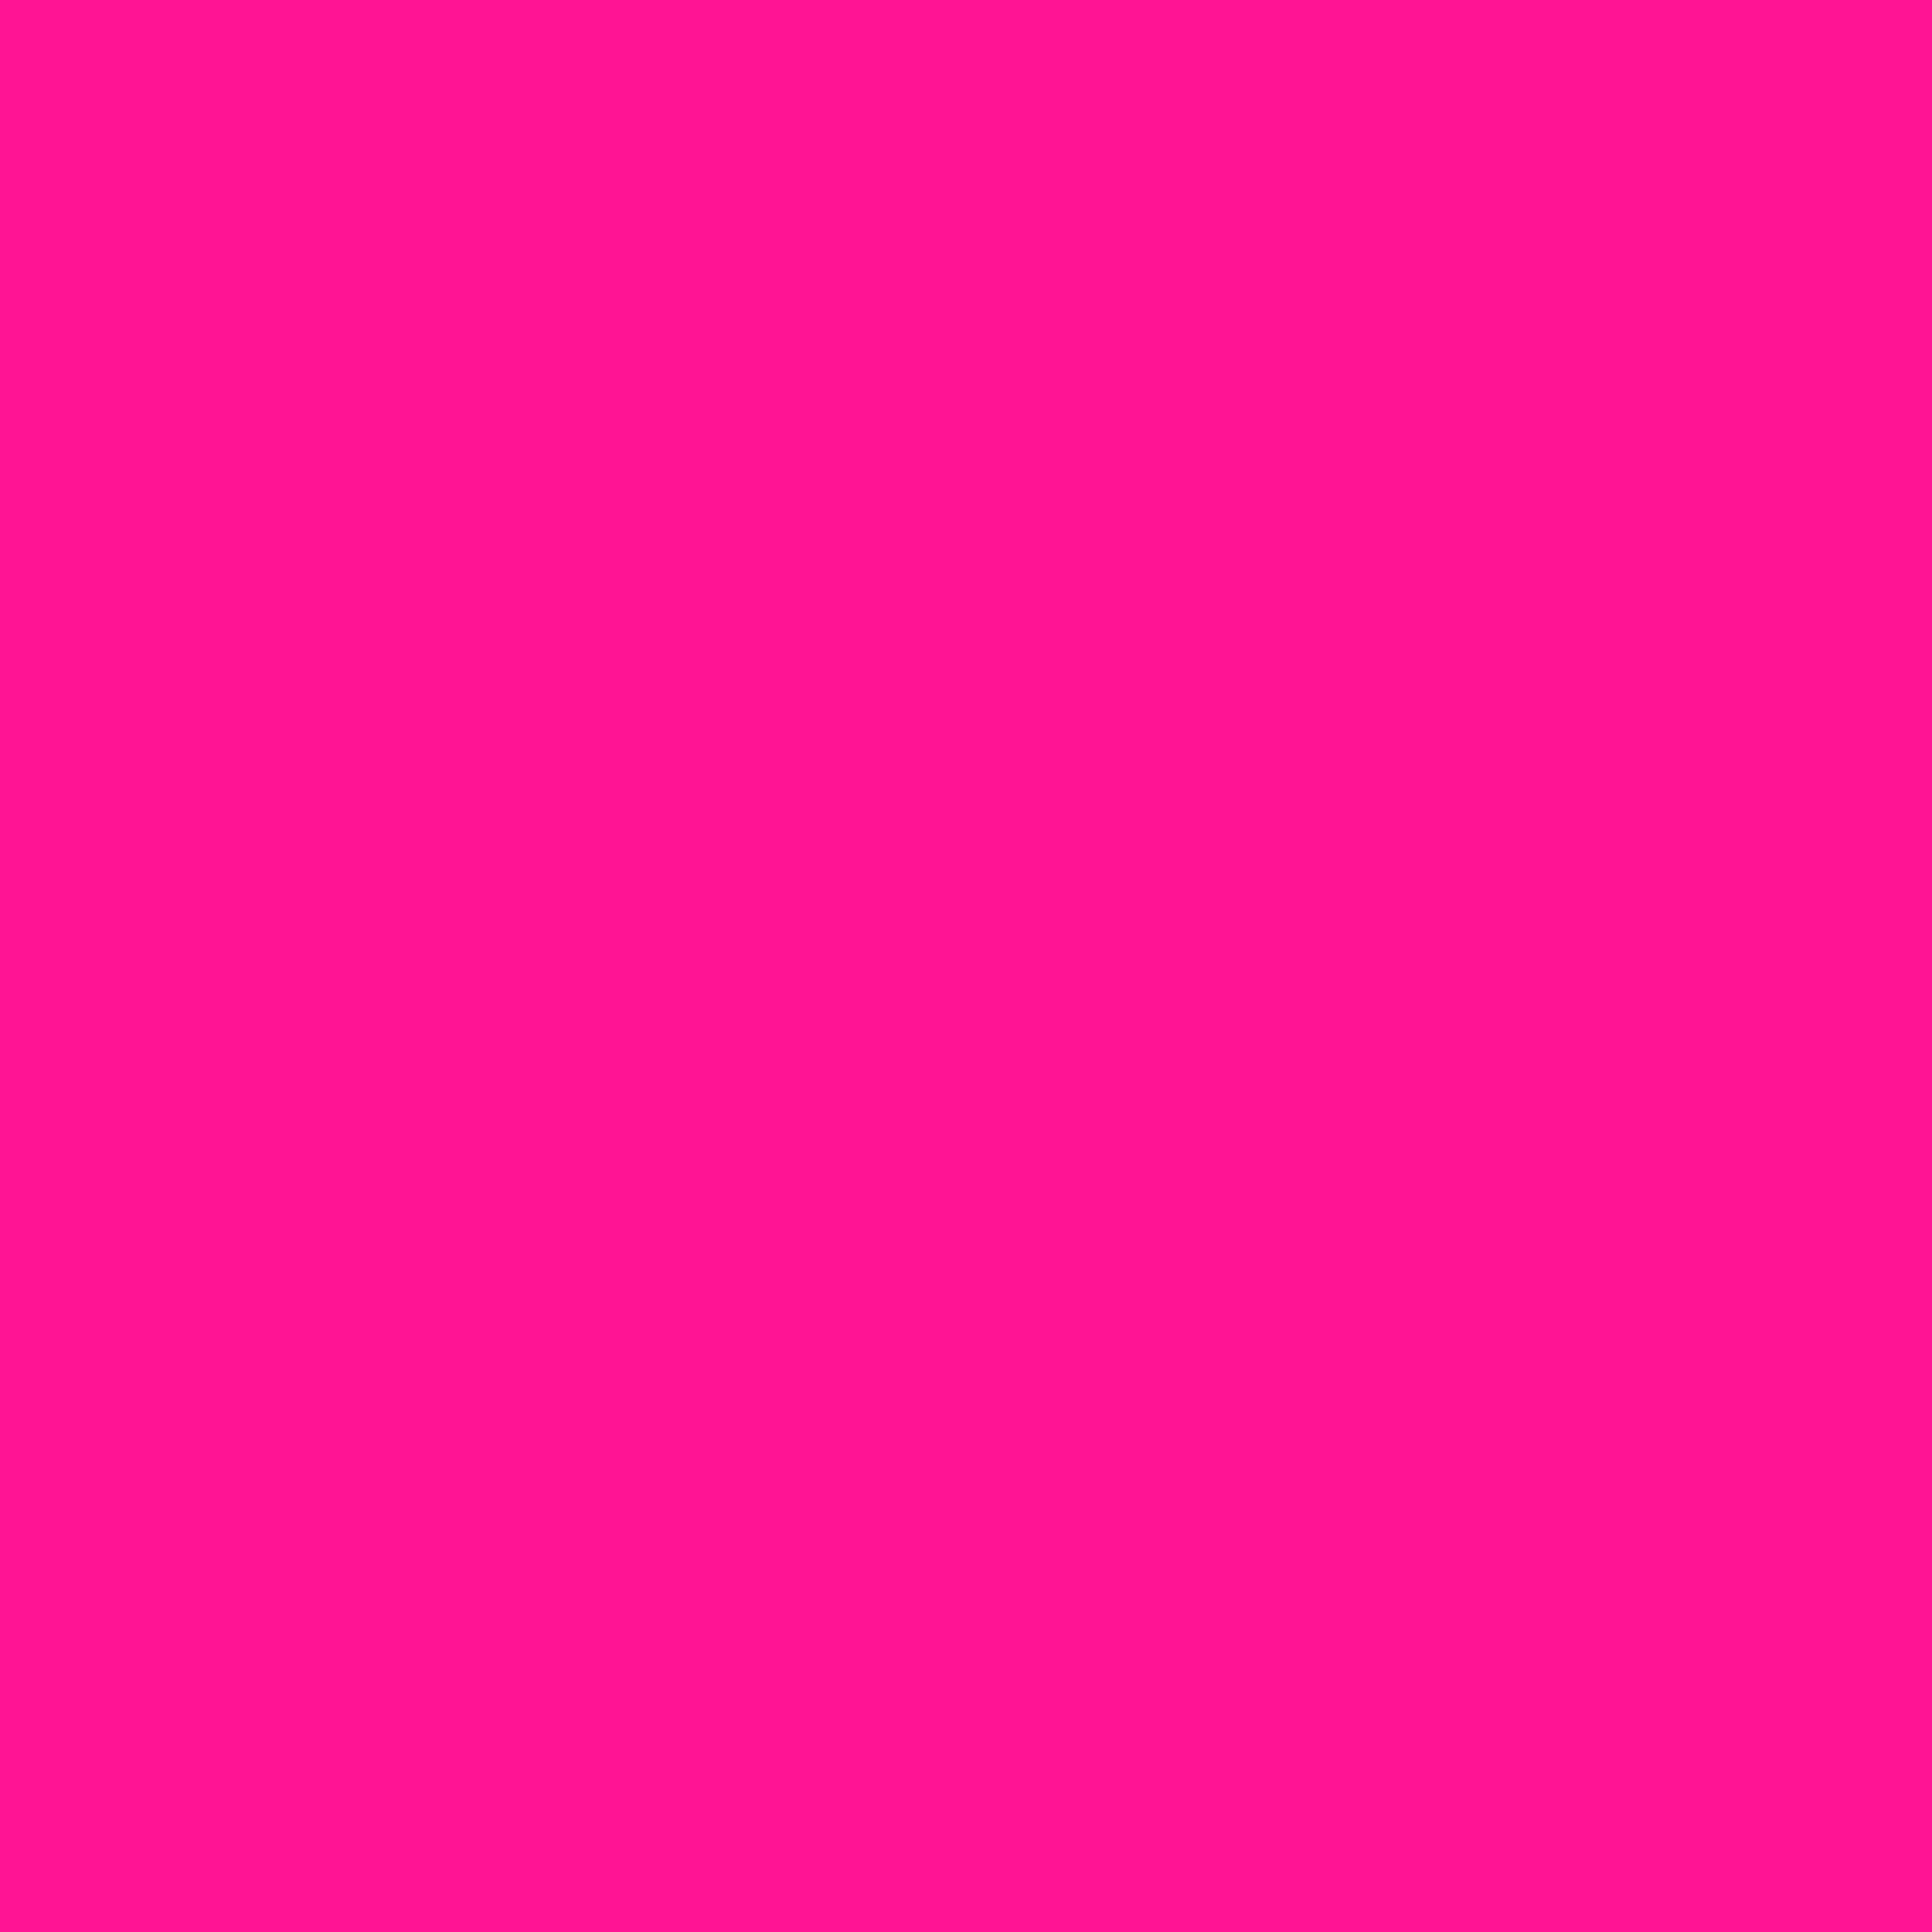 3600x3600 Fluorescent Pink Solid Color Background